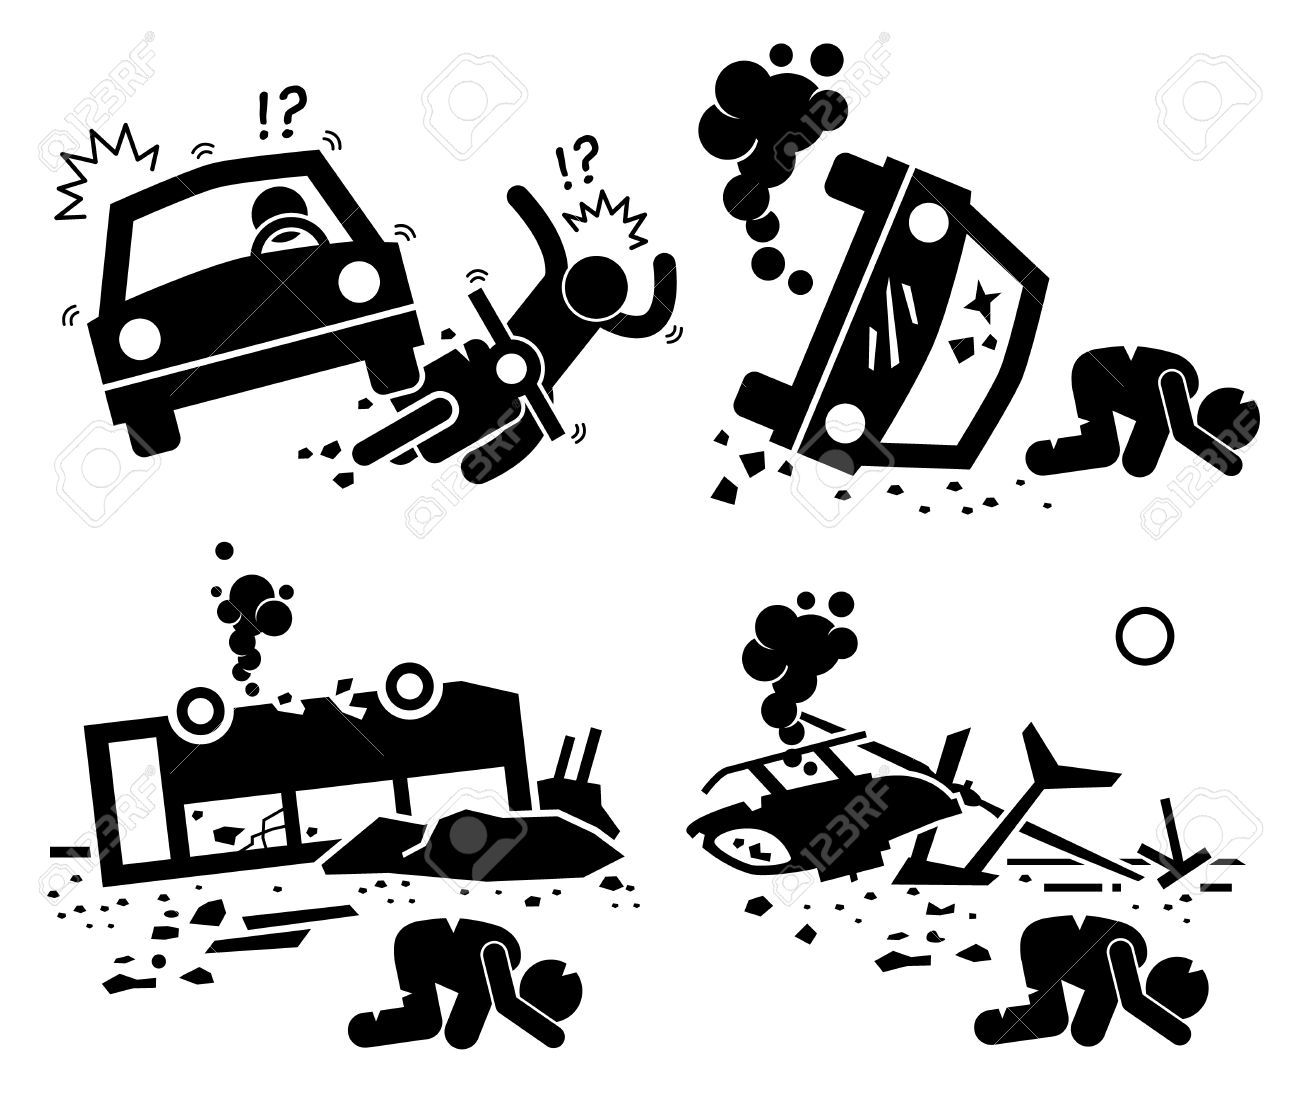 graphic black and white Accident clipart mishap. Stock vector art in